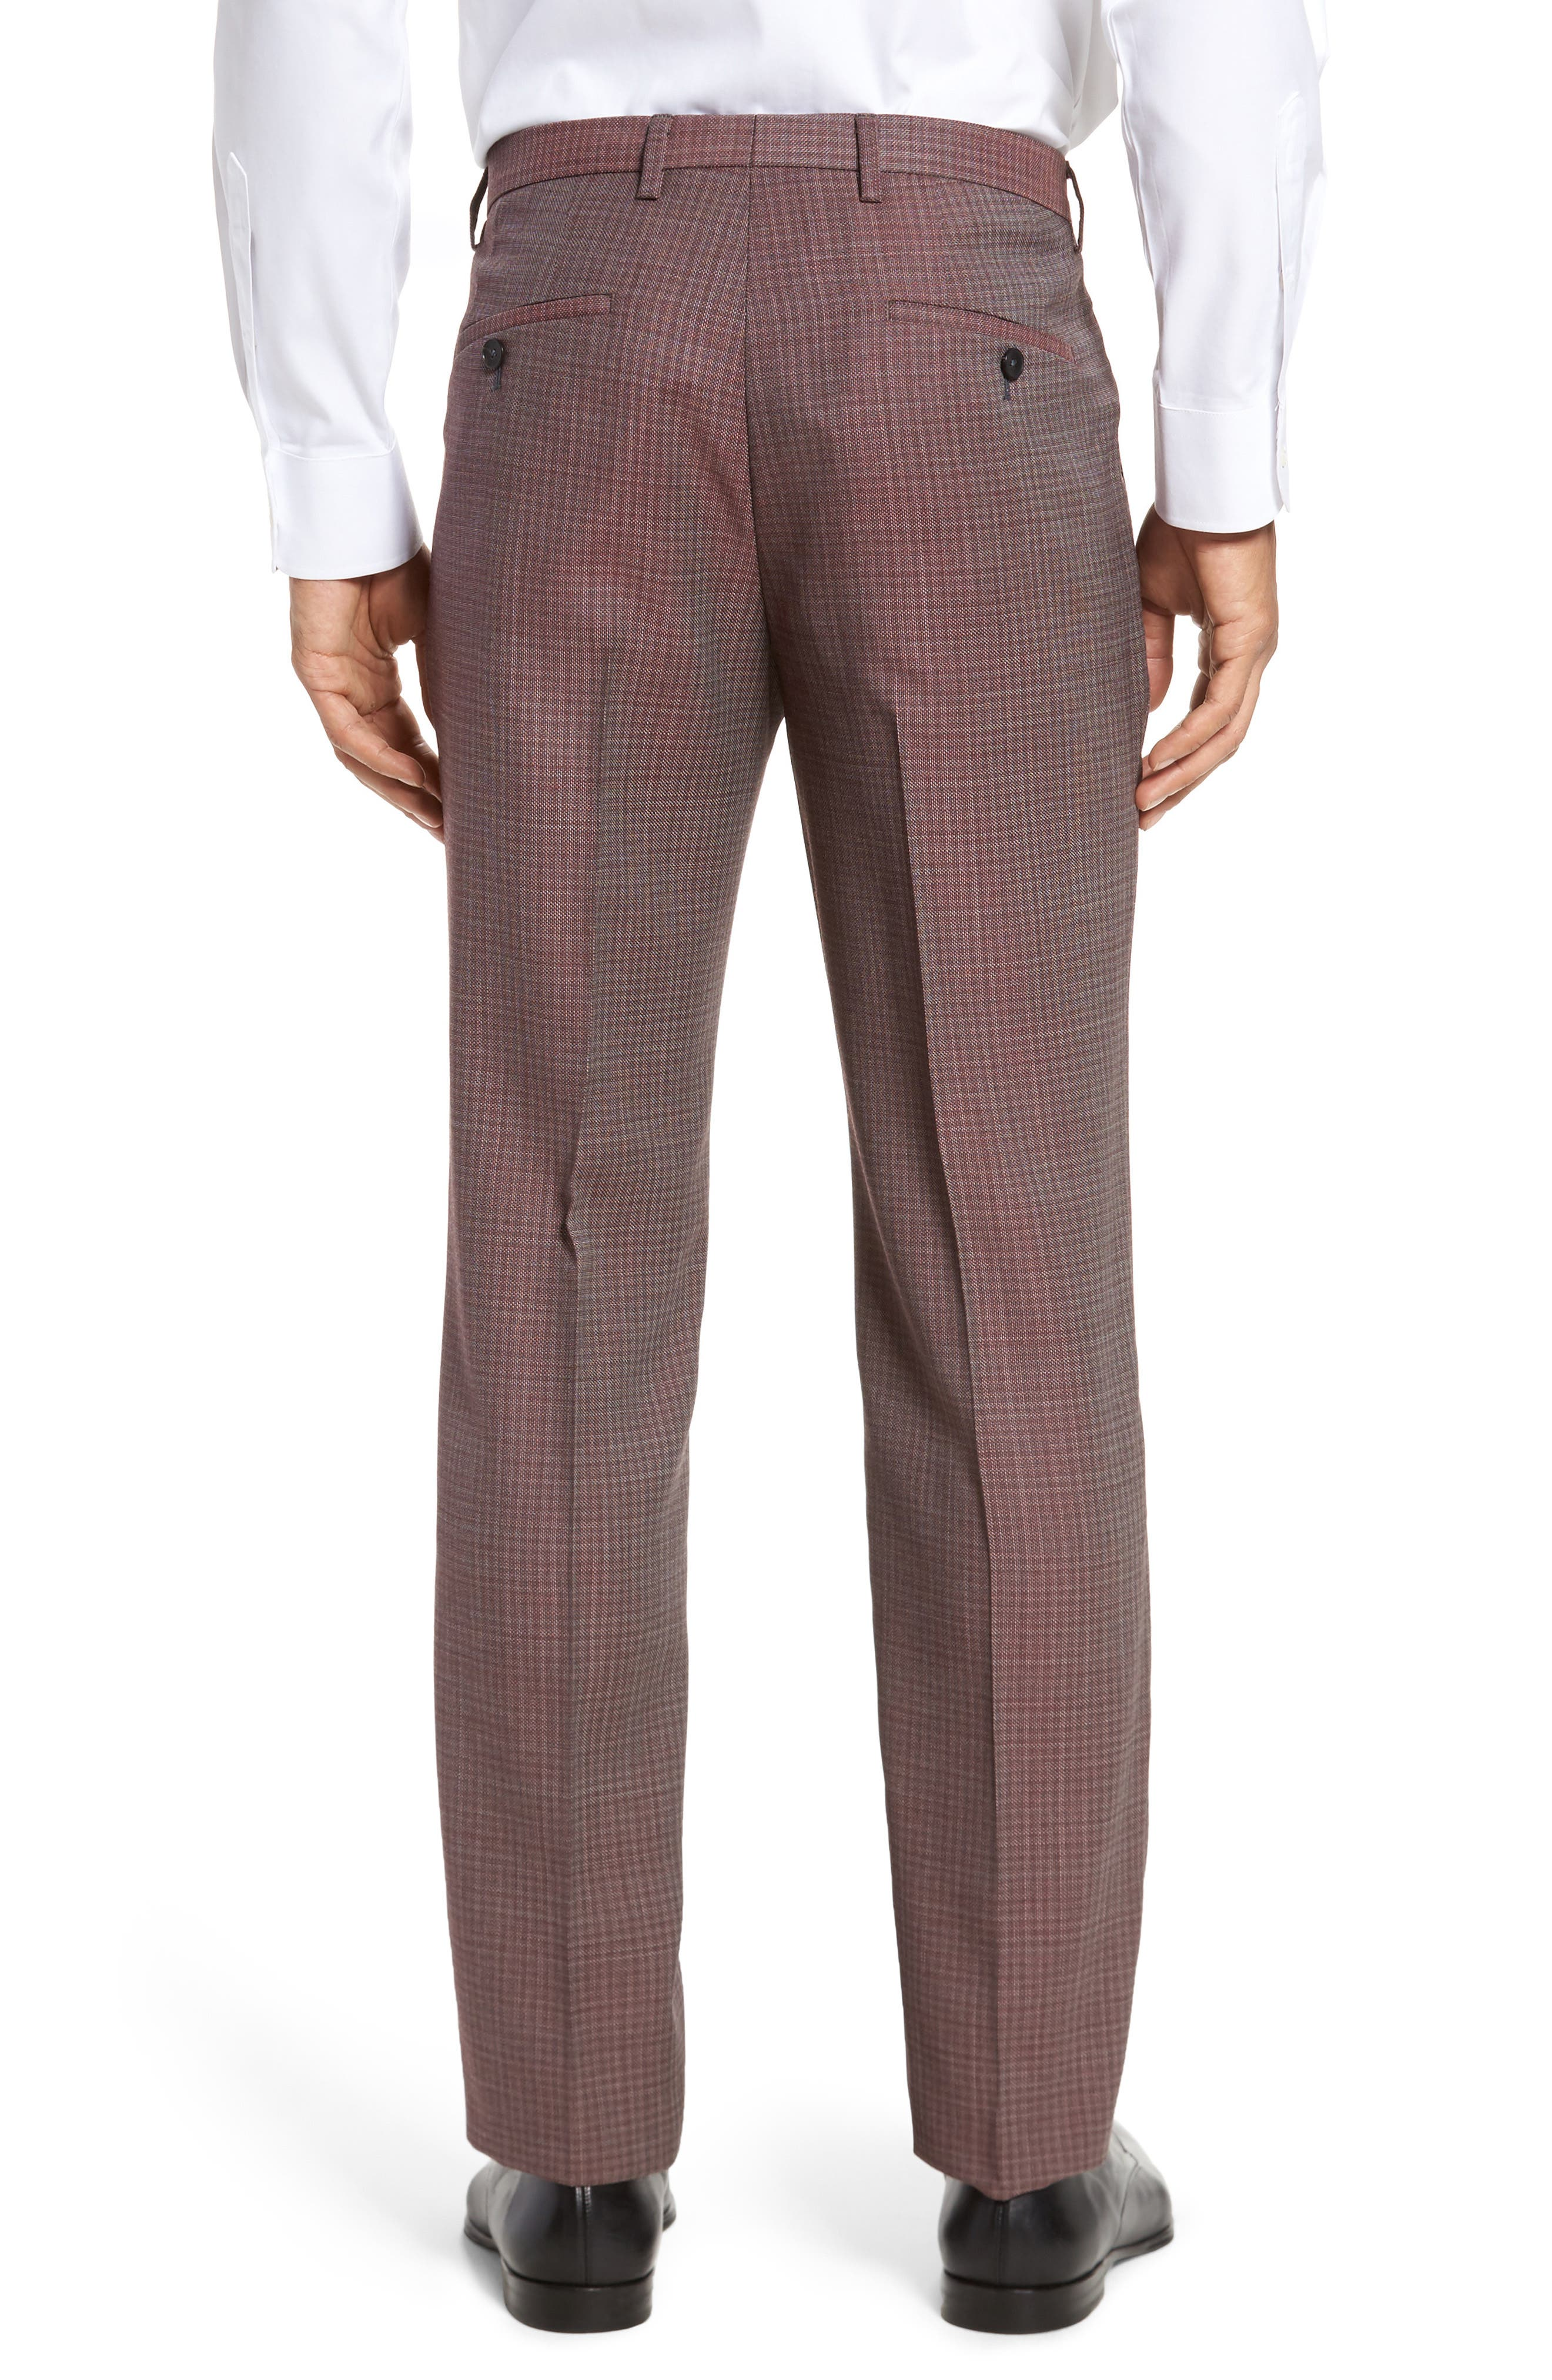 Leenon Flat Front Regular Fit Check Wool Trousers,                             Alternate thumbnail 2, color,                             Medium Red